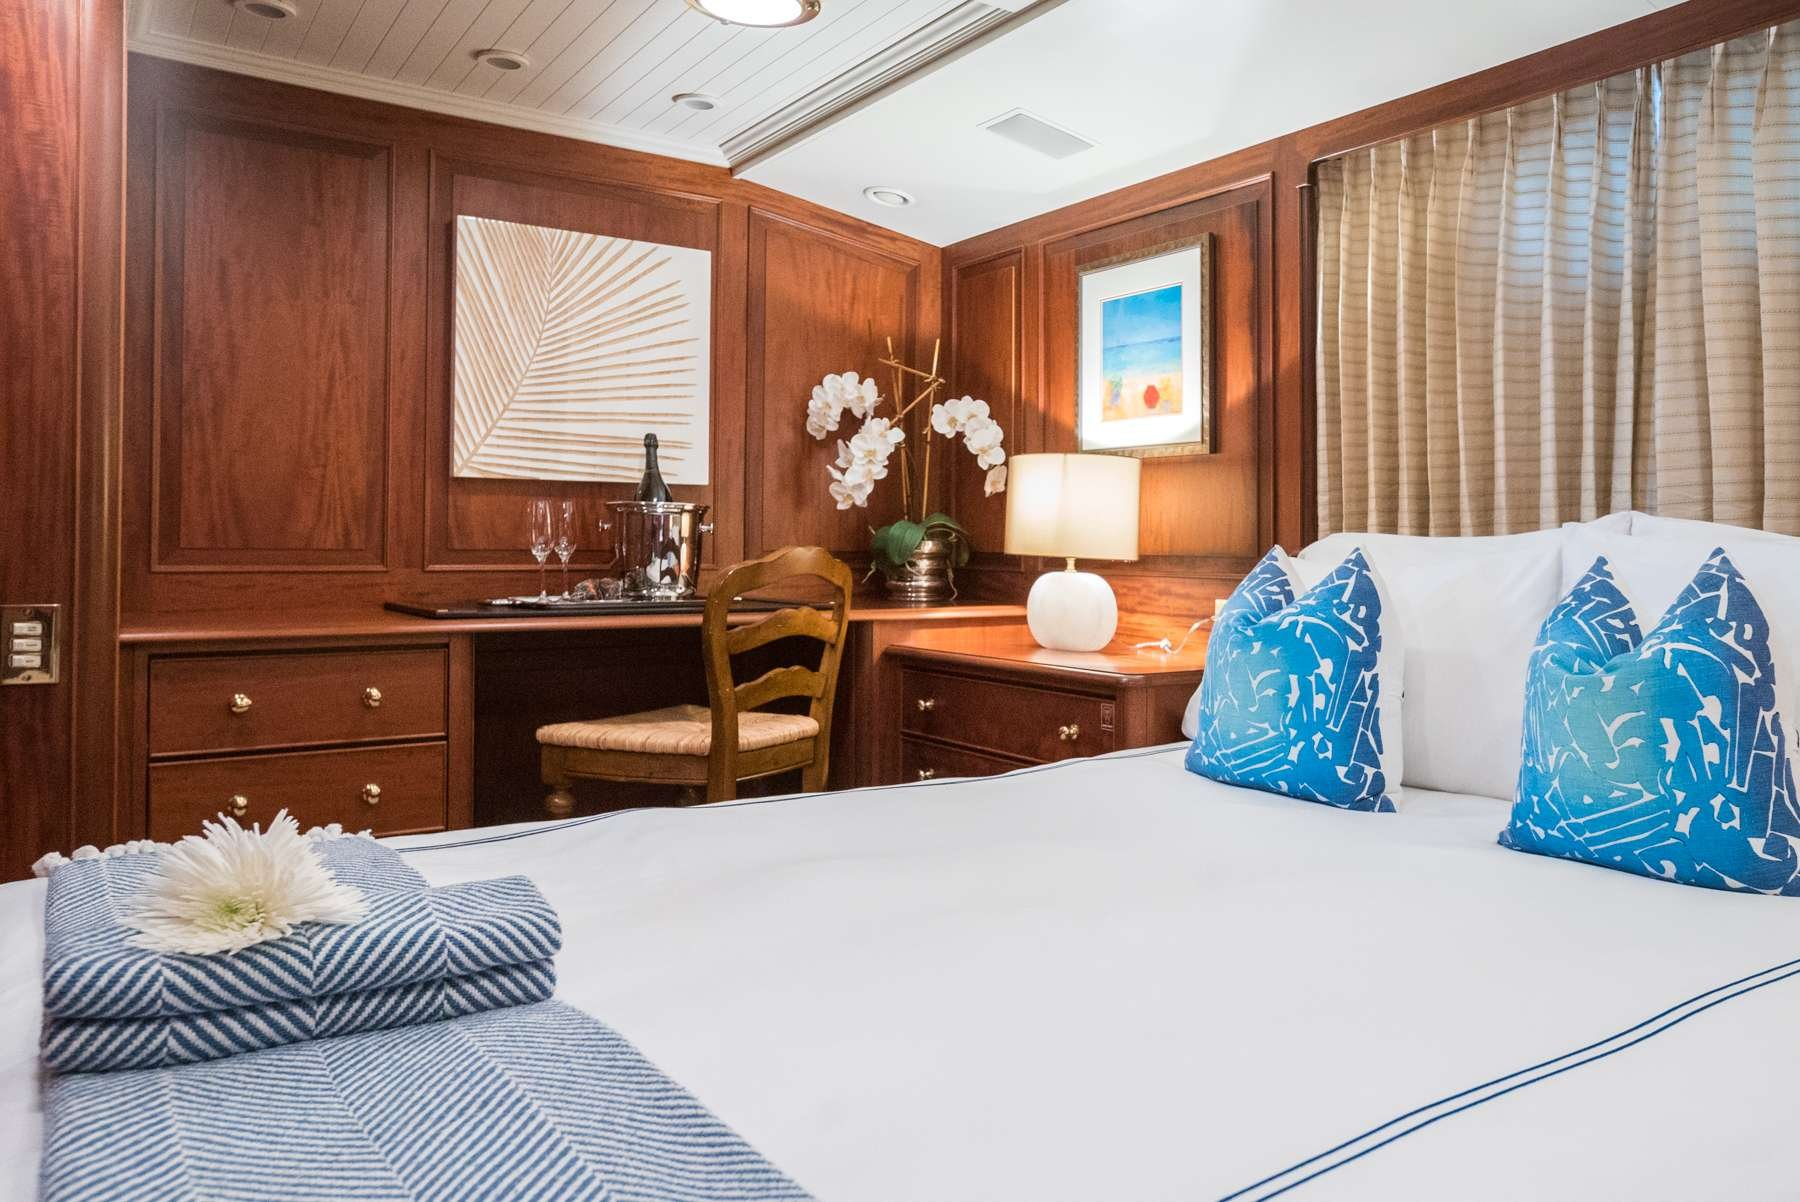 Motor Yacht 'LADY J' Queen Stateroom, 12 PAX, 9 Crew, 142.00 Ft, 43.00 Meters, Built 1997, Palmer Johnson, Refit Year 2017